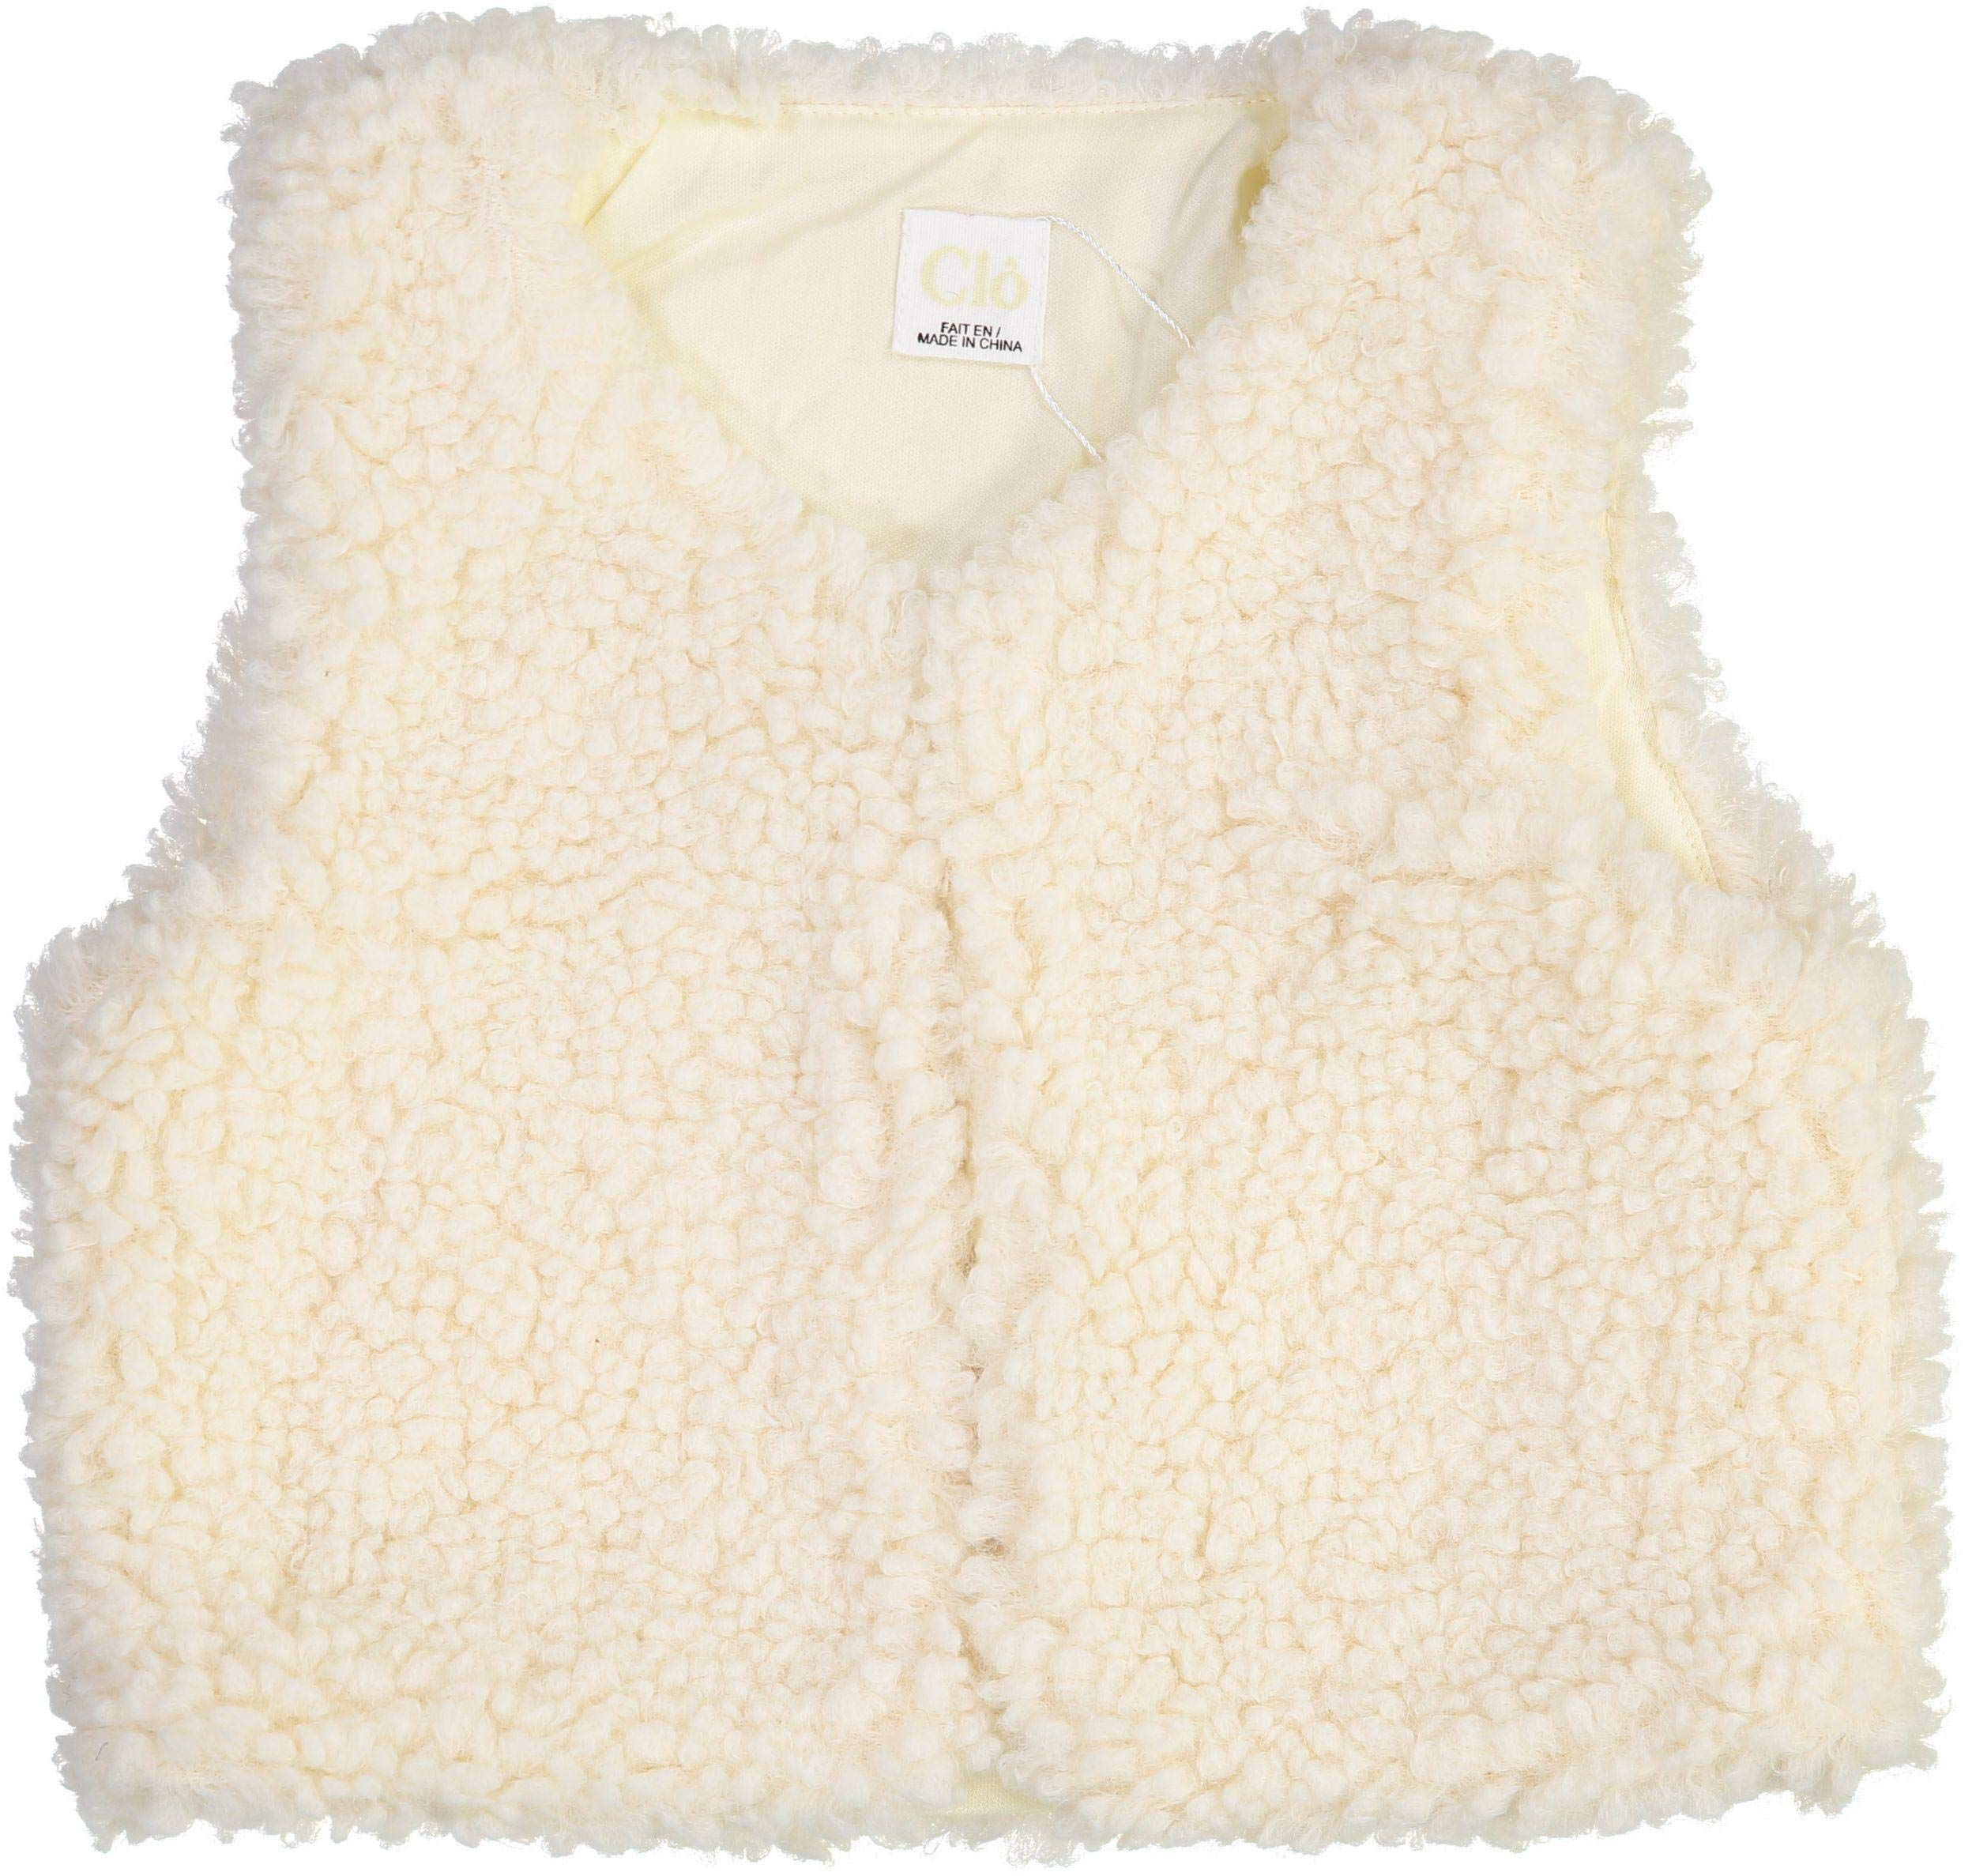 Clo Boys Girls Unisex Baby Sherpa Vest - WA9CP4009V - Off White, 6 Months by Clo